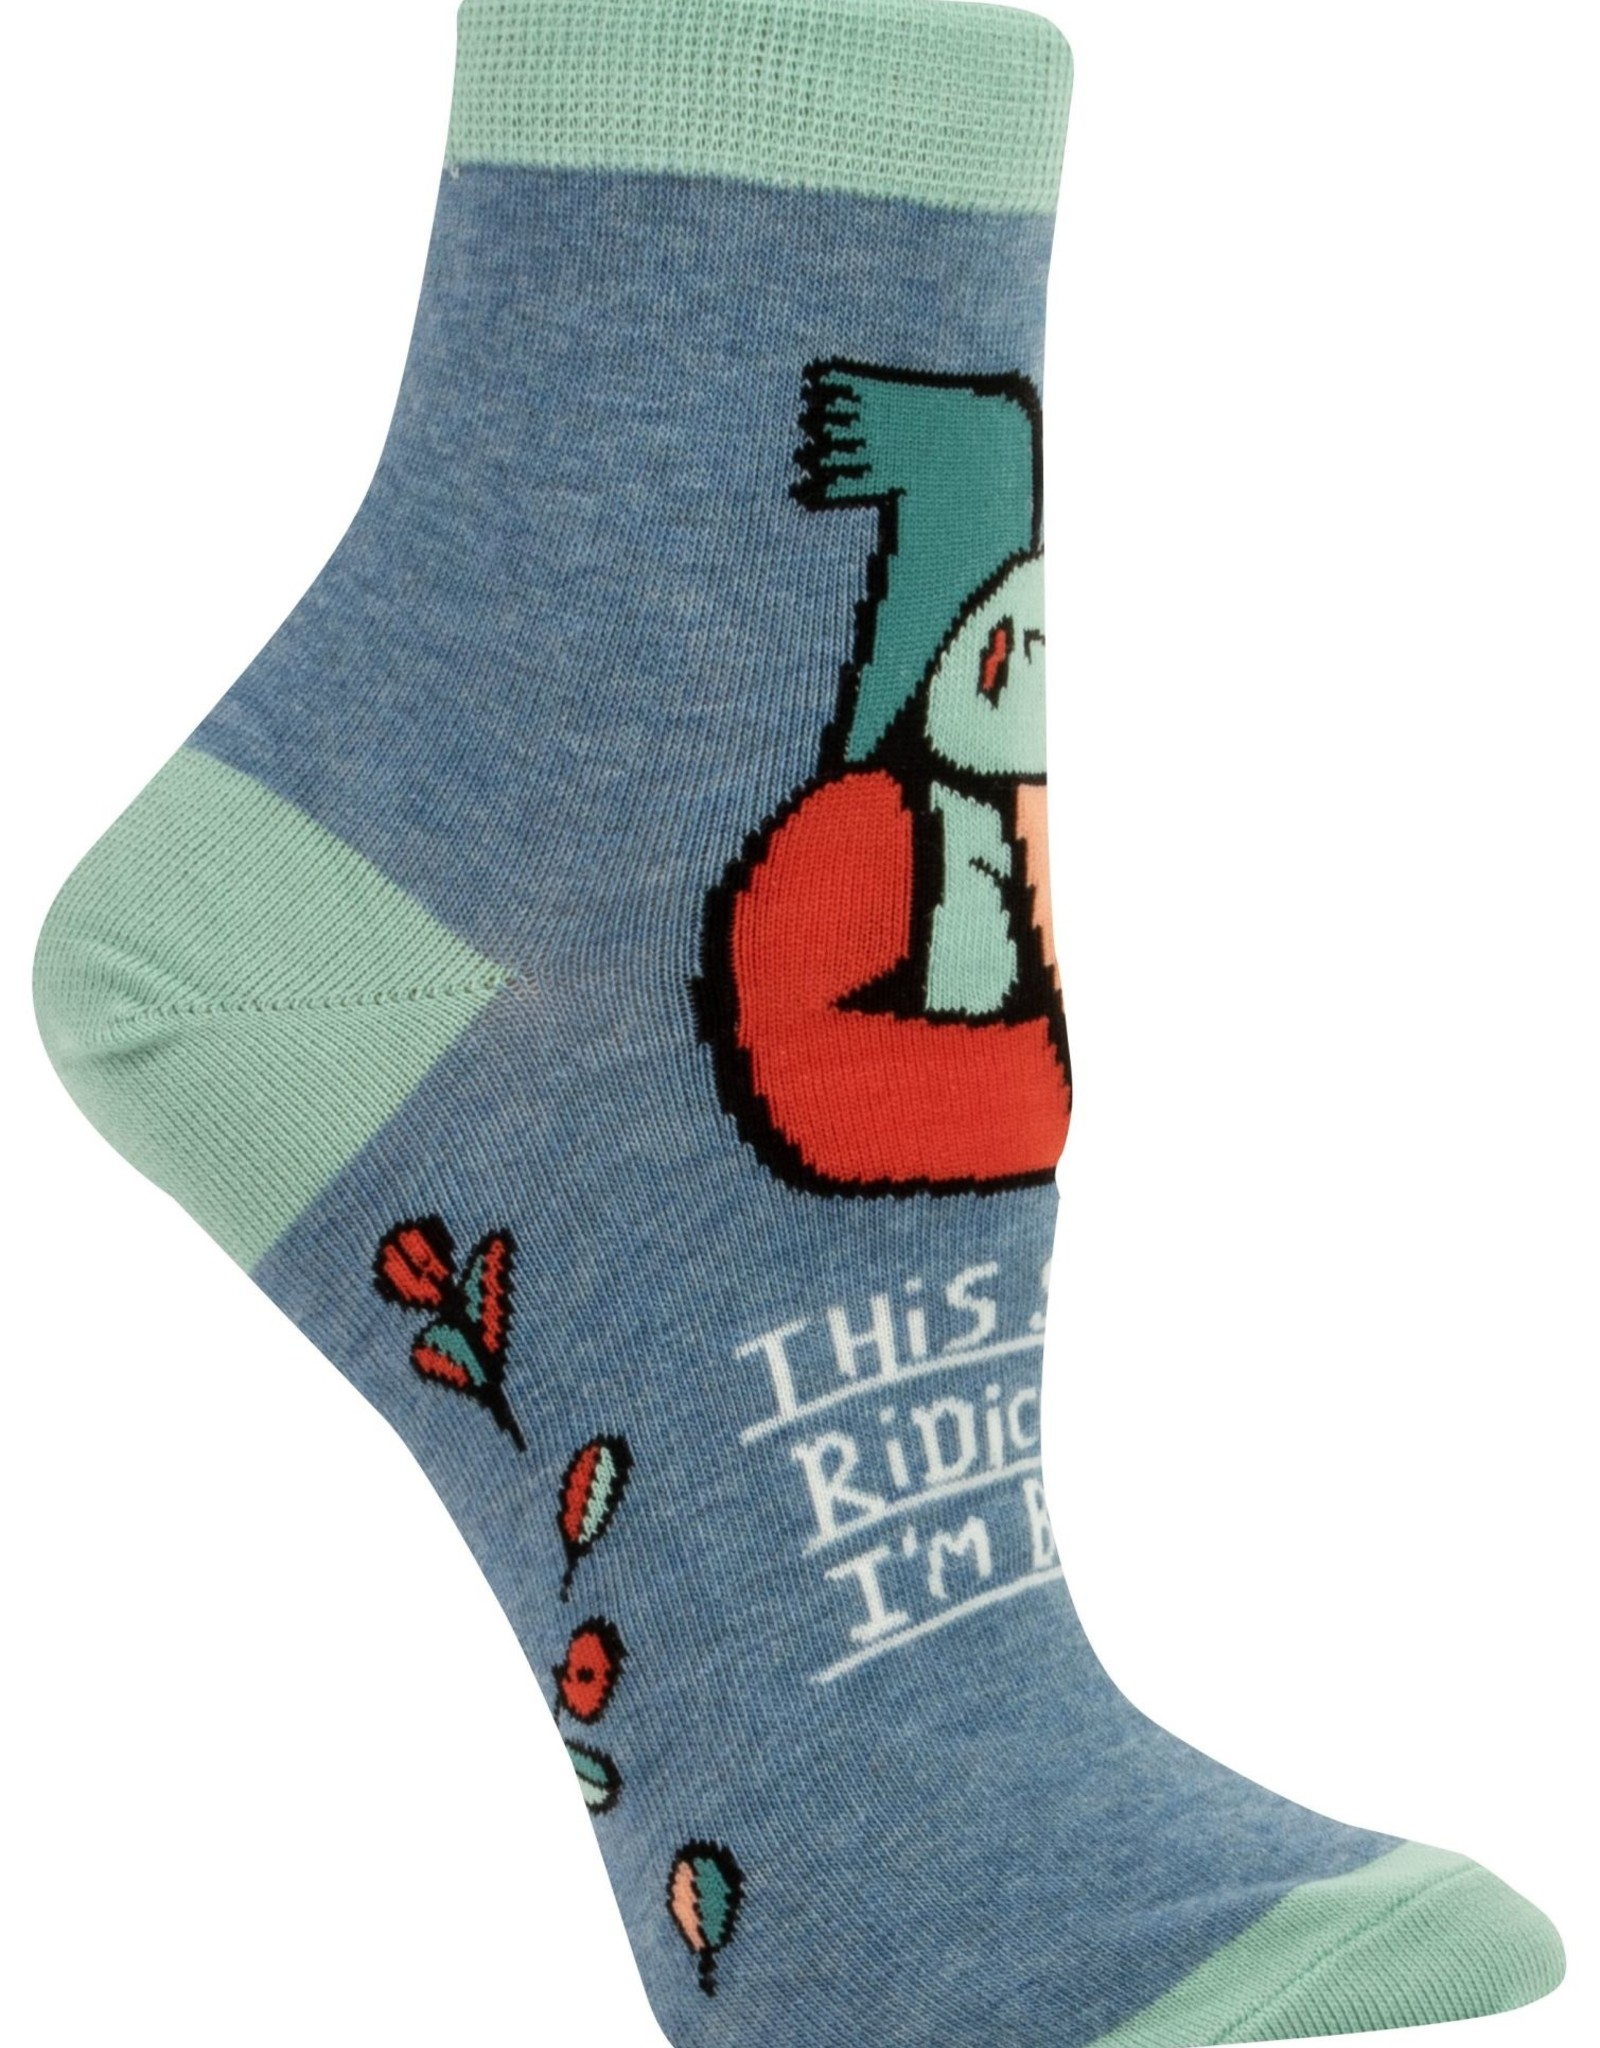 Shit is Ridiculous Ankle Socks